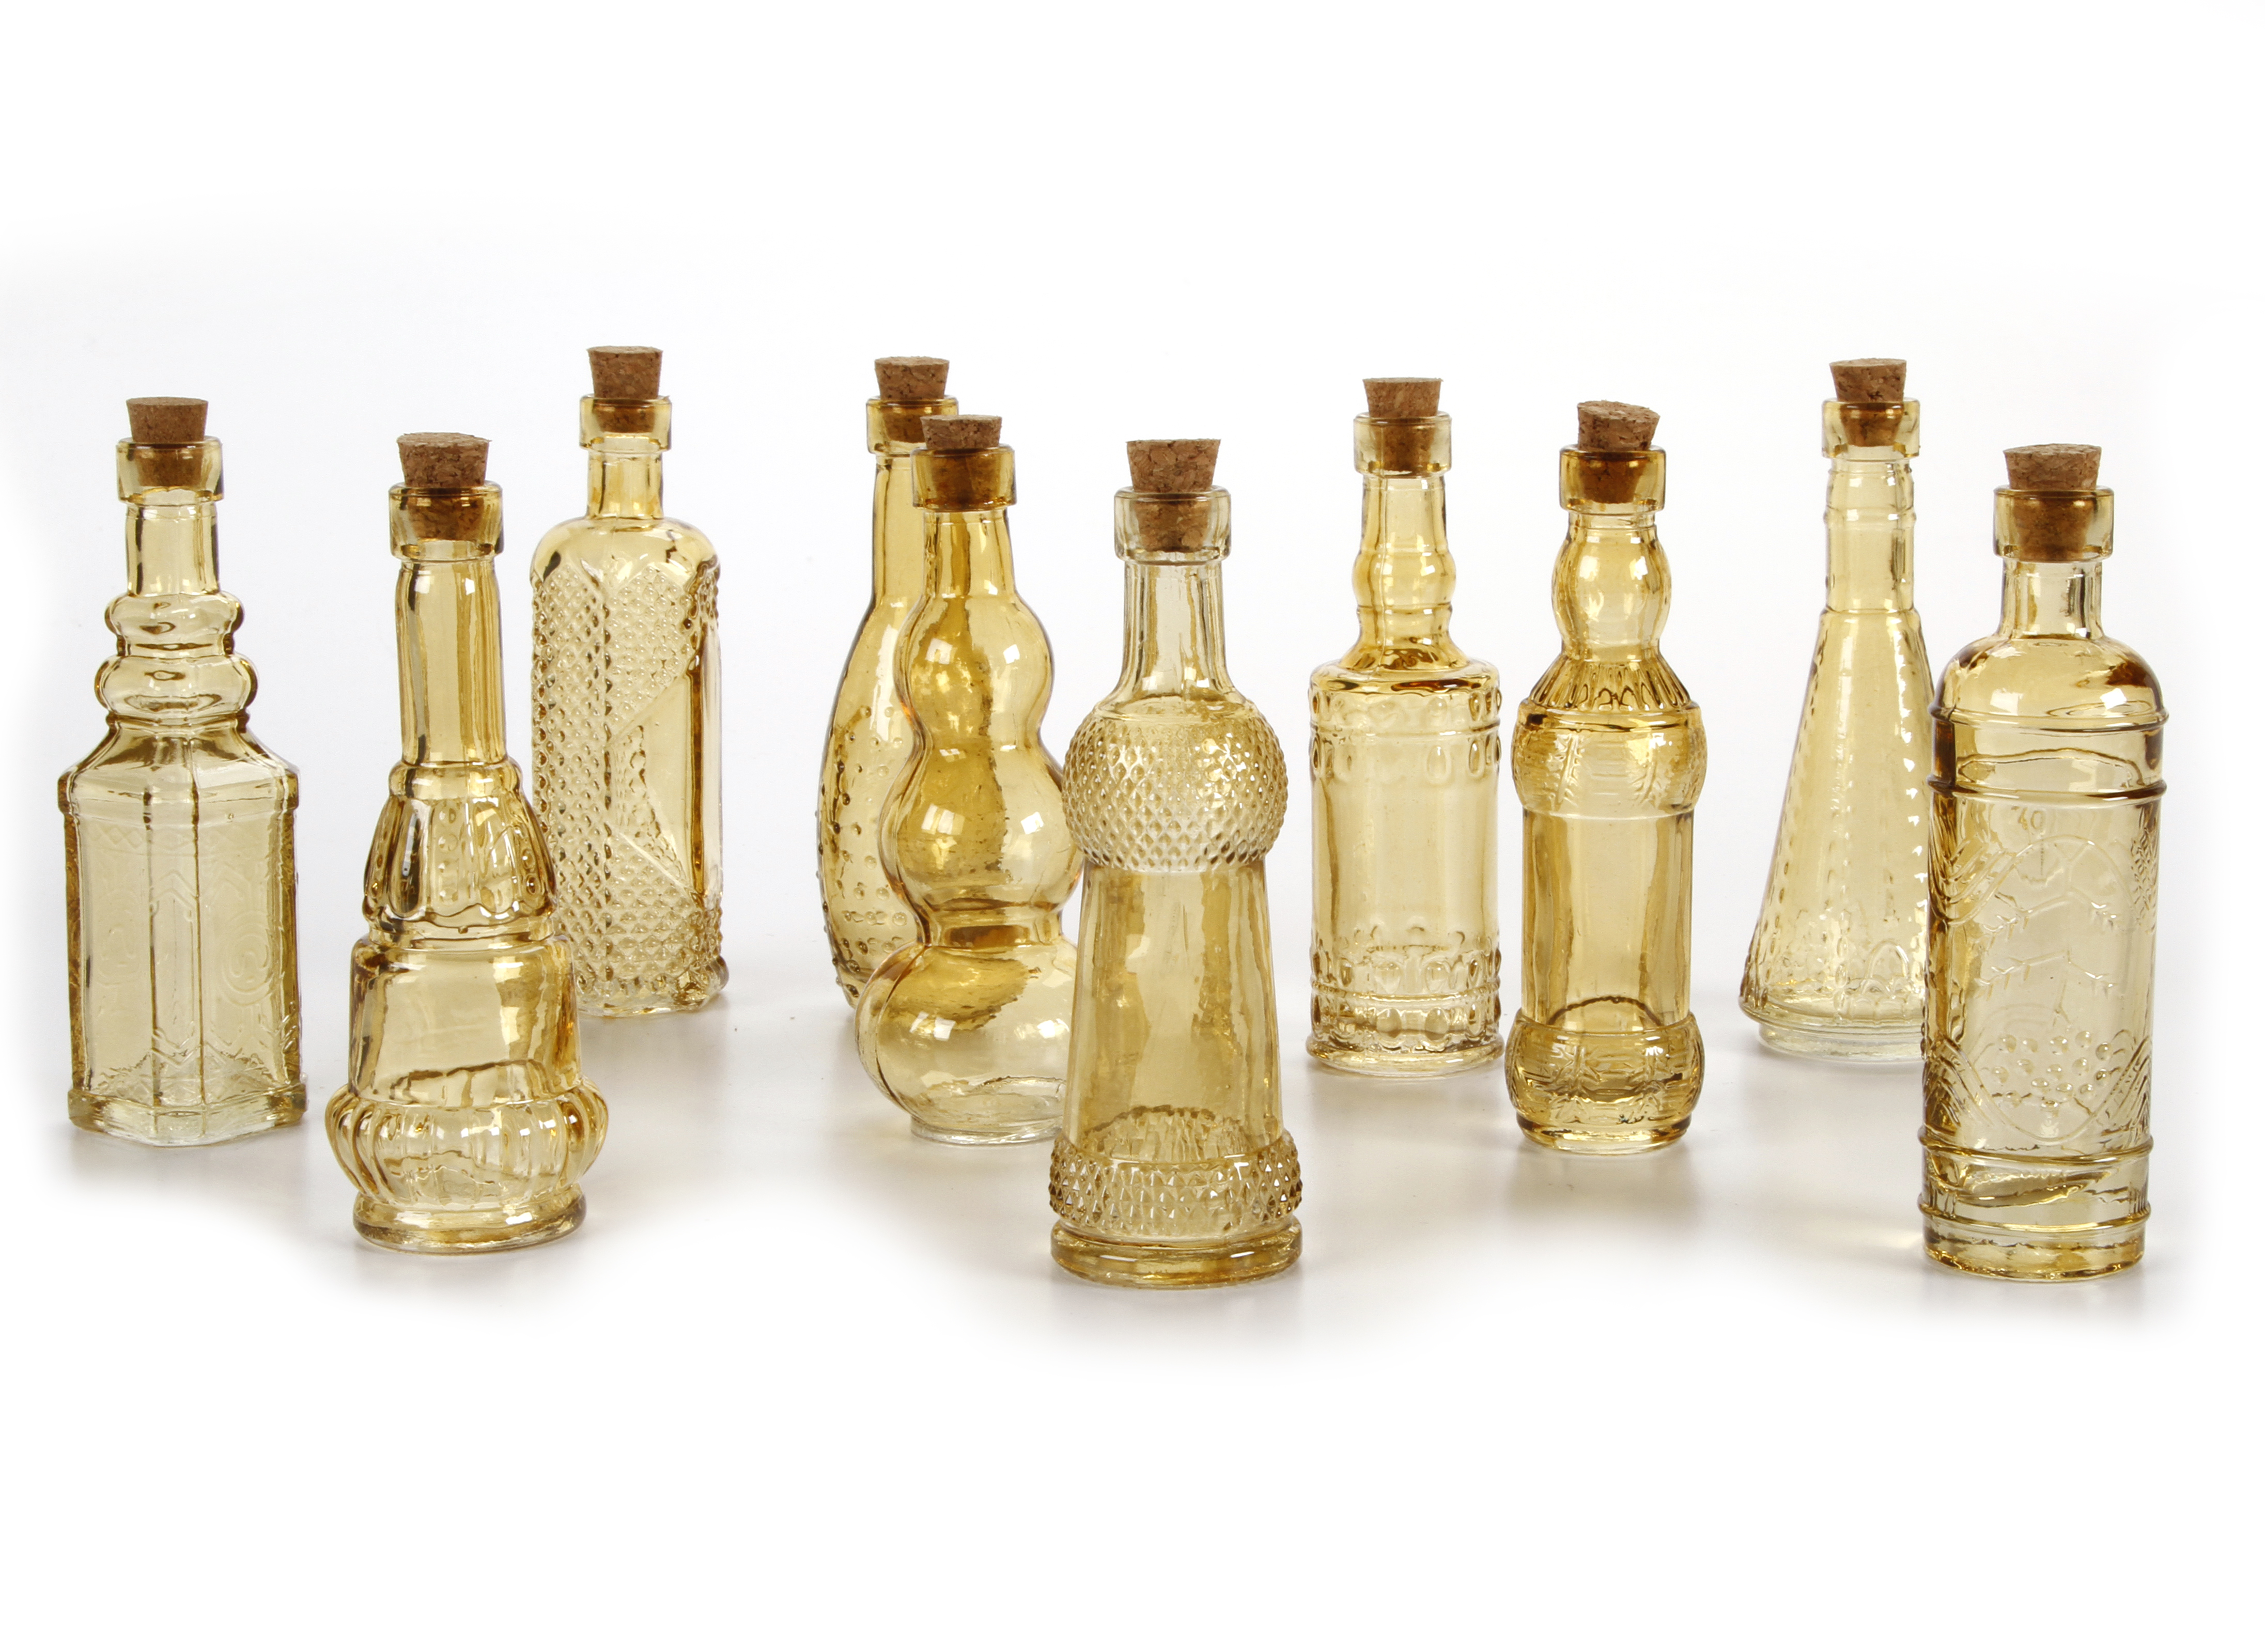 Vintage Glass Bottles with Corks, Assorted, 5 inch, Set of 10, Amber